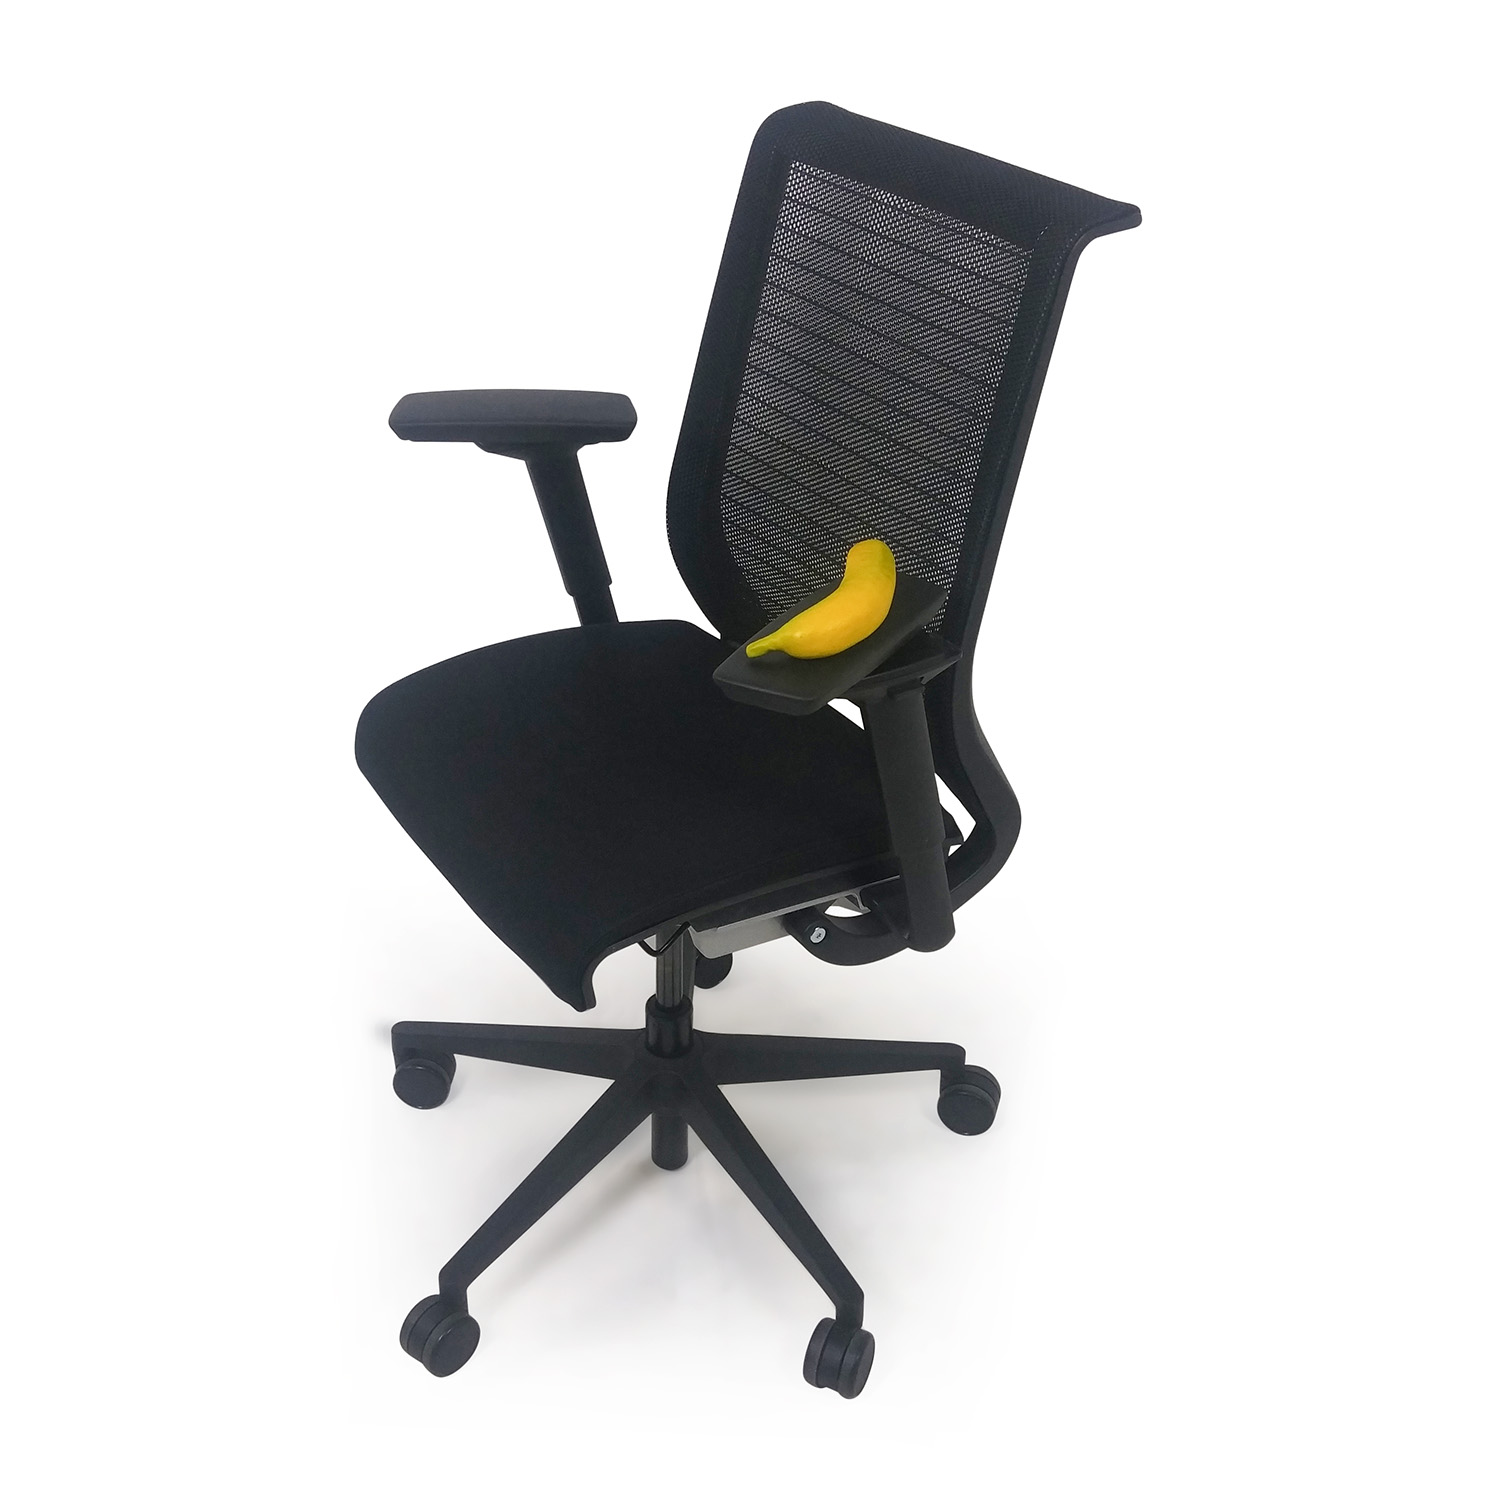 steel chair price in patna folding leg protectors 90 off steelcase modern swivel chairs